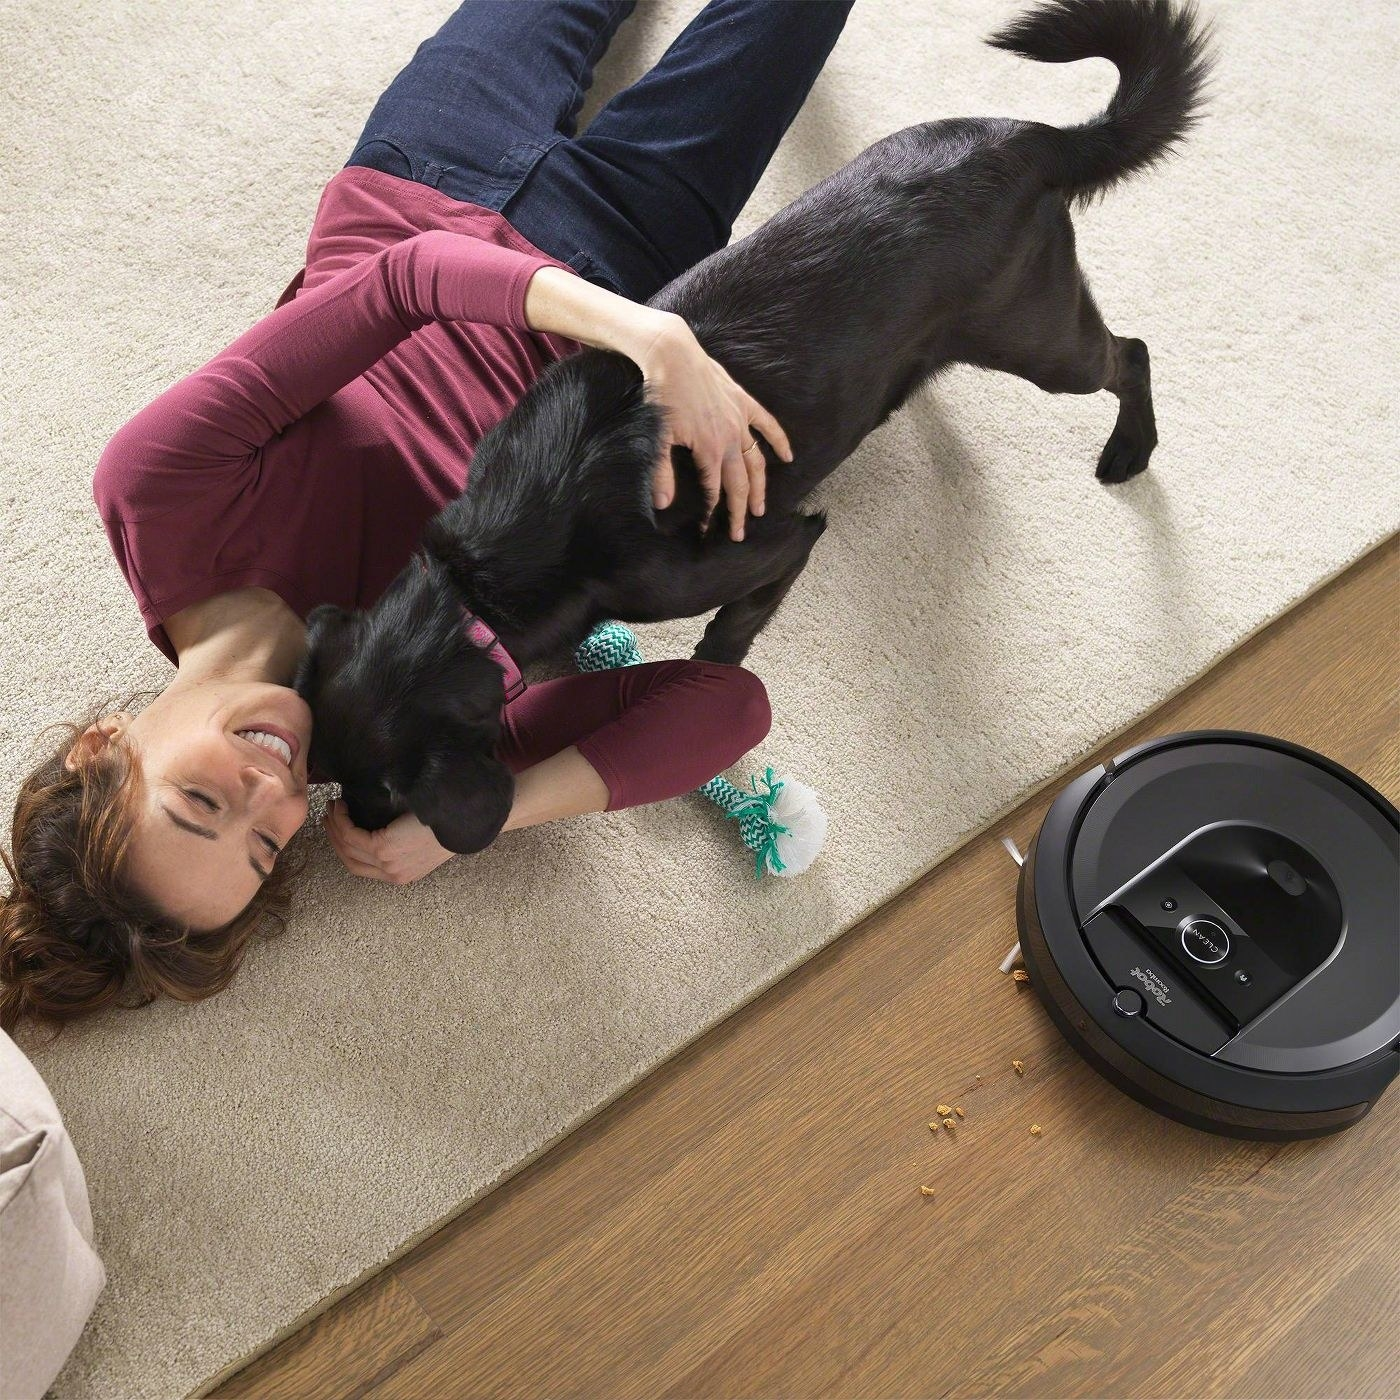 The Roomba vacuuming next to someone playing with a dog